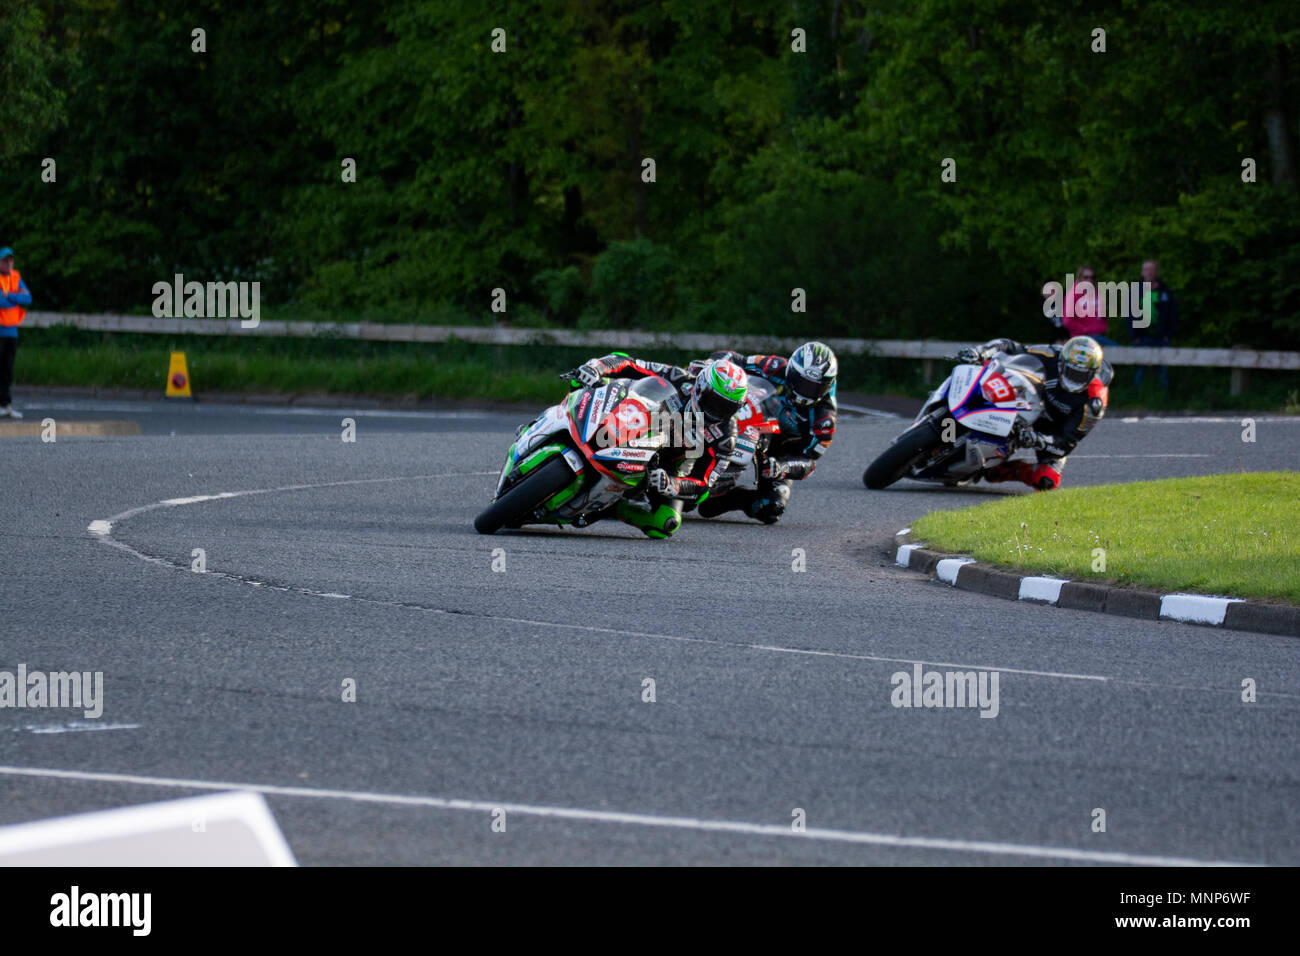 Ballysally Roundabout Coleraine Northern Ireland. 17th May 2018. NW 200 Bayview Superstock Race. James Hillier(37) leads Peter Hickman (60) and Michael Dunlop( 3) through the Roundabout at Ballysally Credit: Brian Wilkinson/Alamy Live News - Stock Image